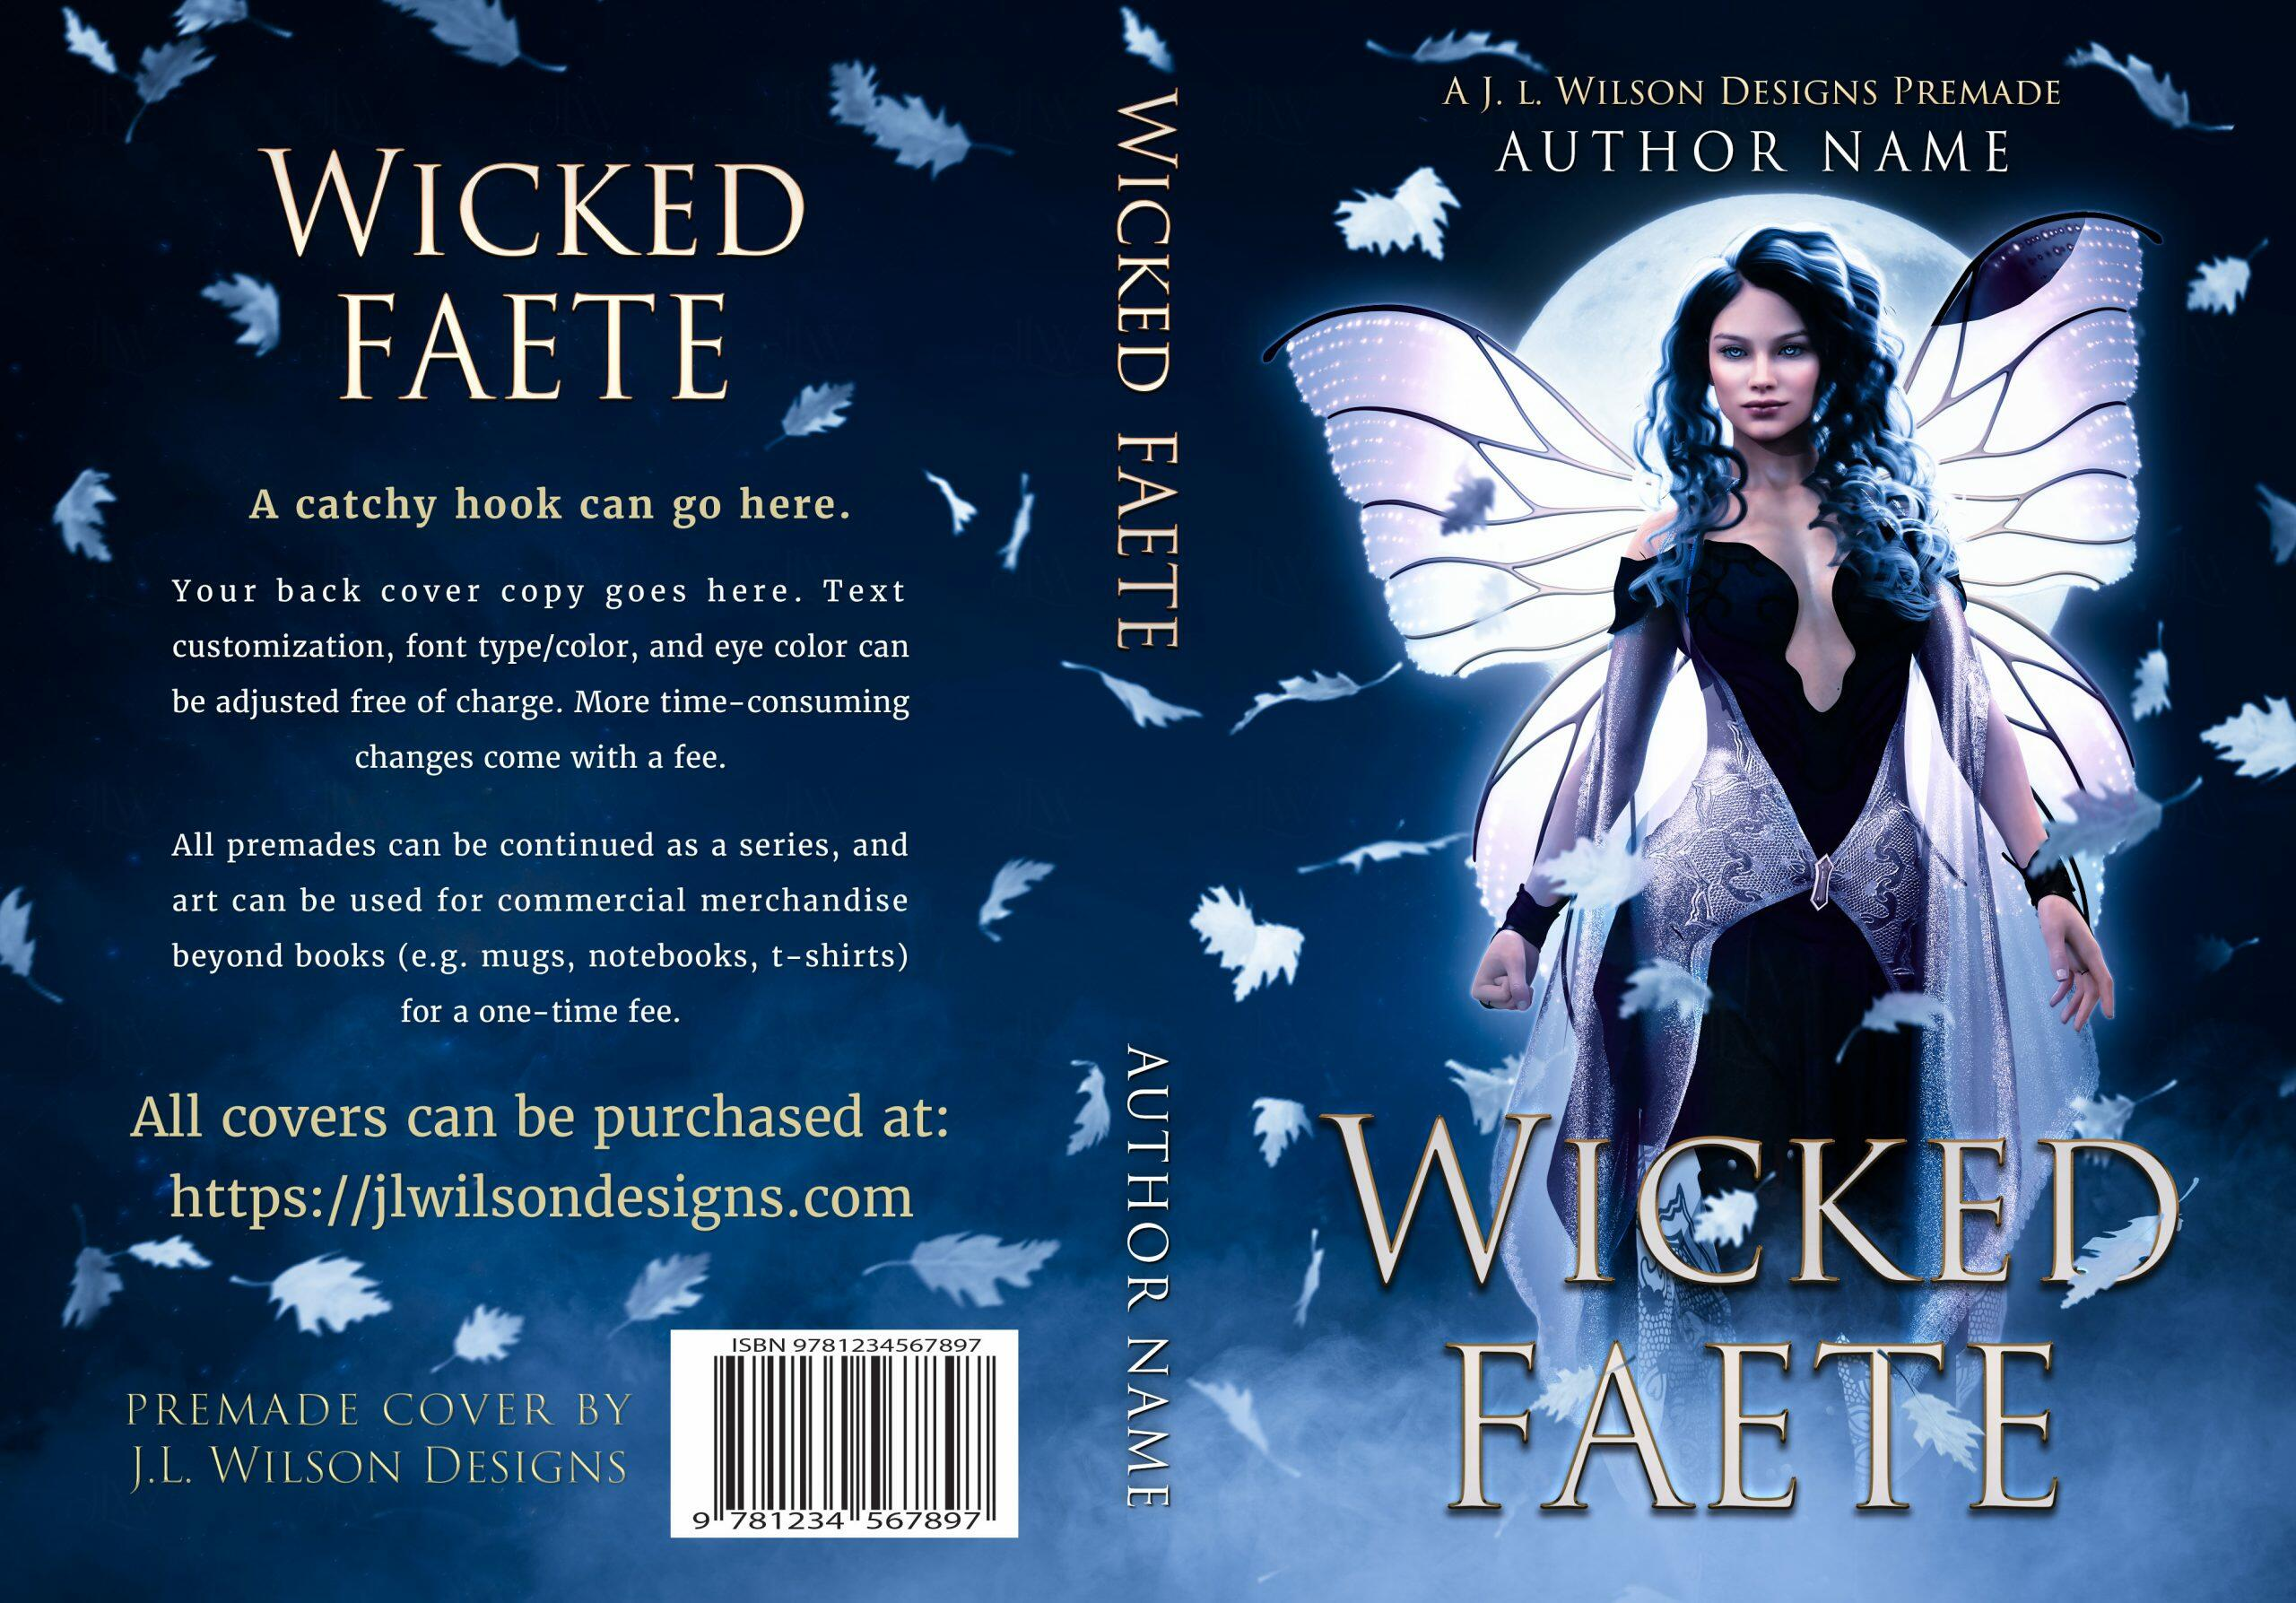 A dark fantasy book cover featuring a beautiful fae woman with fairy wings at night.